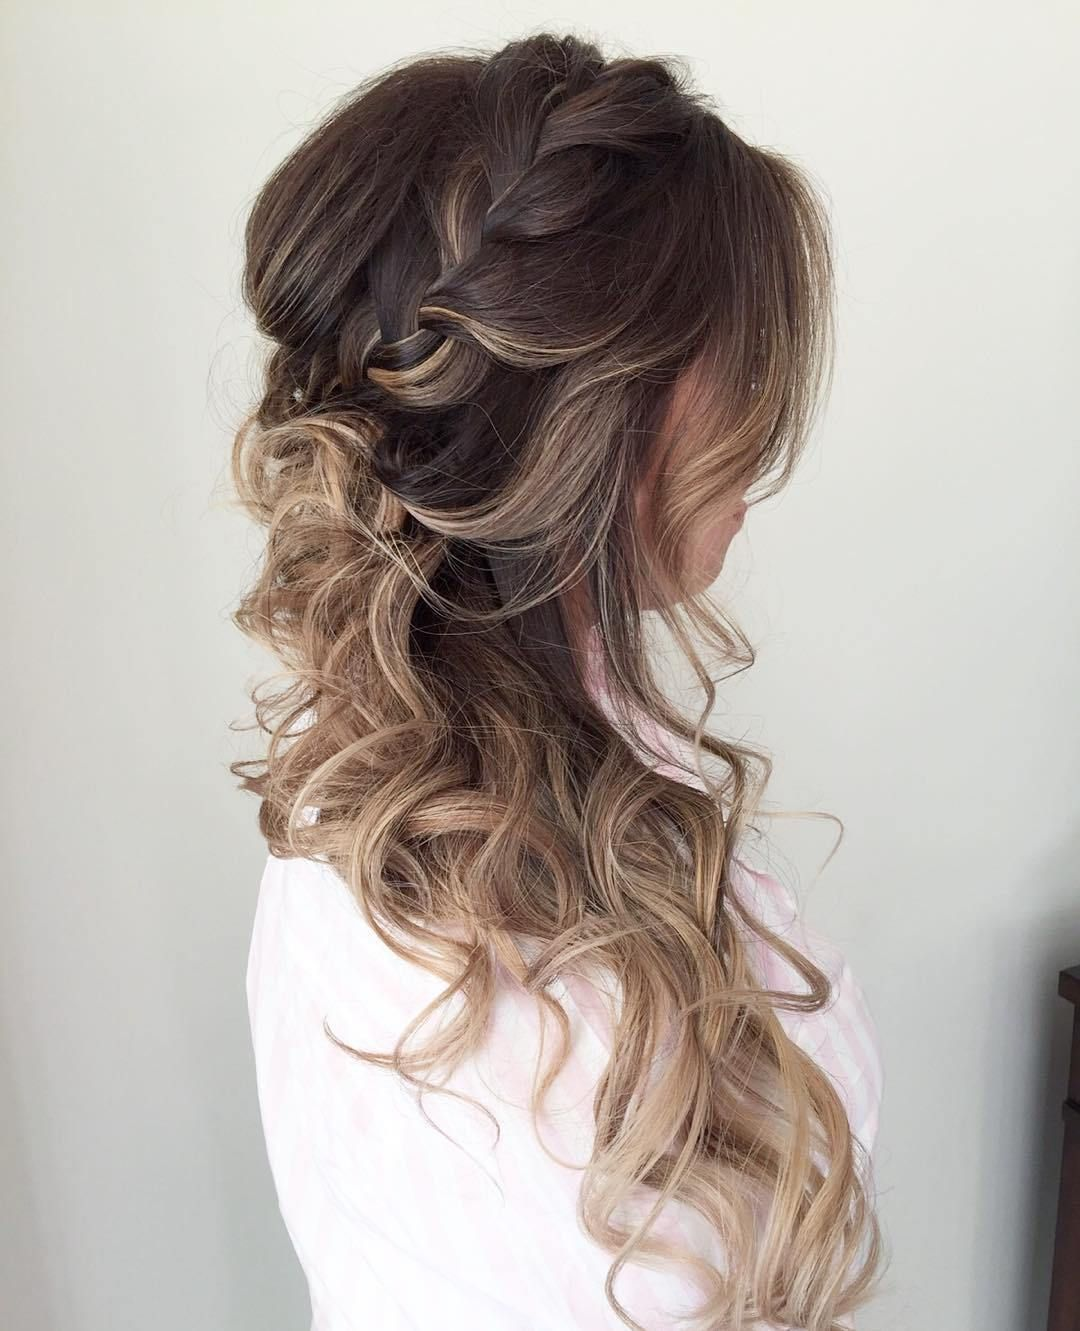 40 picture-perfect hairstyles for long thin hair | updo